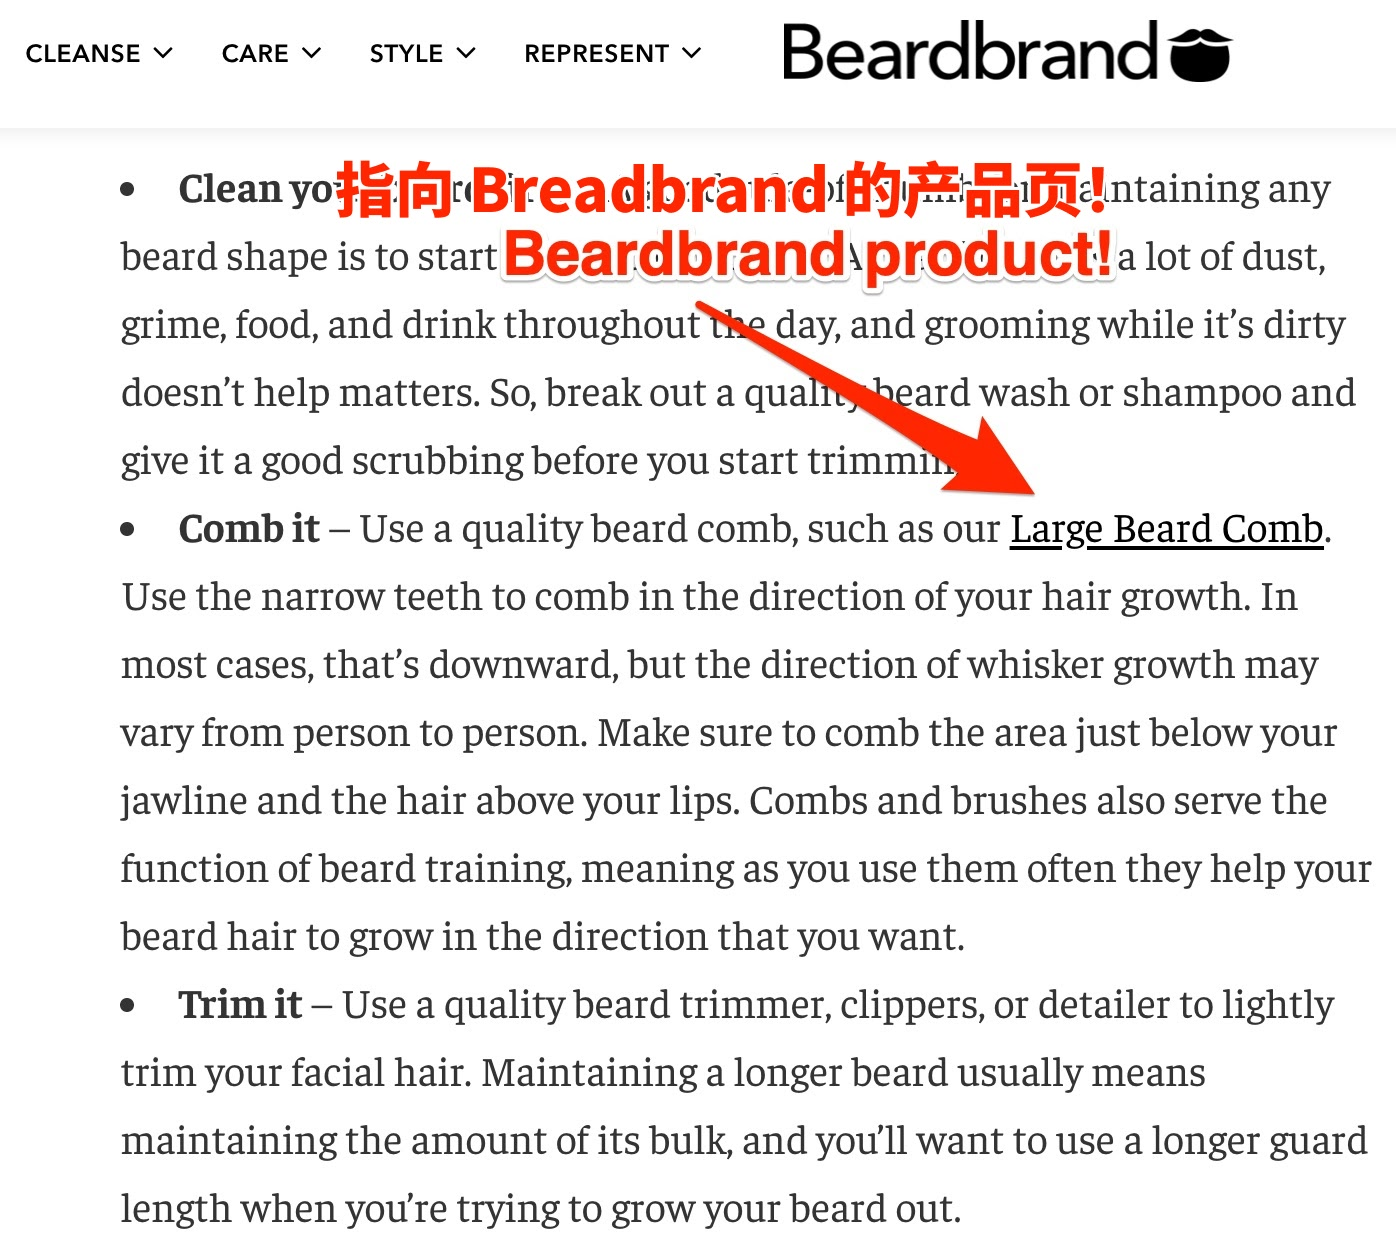 beardbrand blog post cn